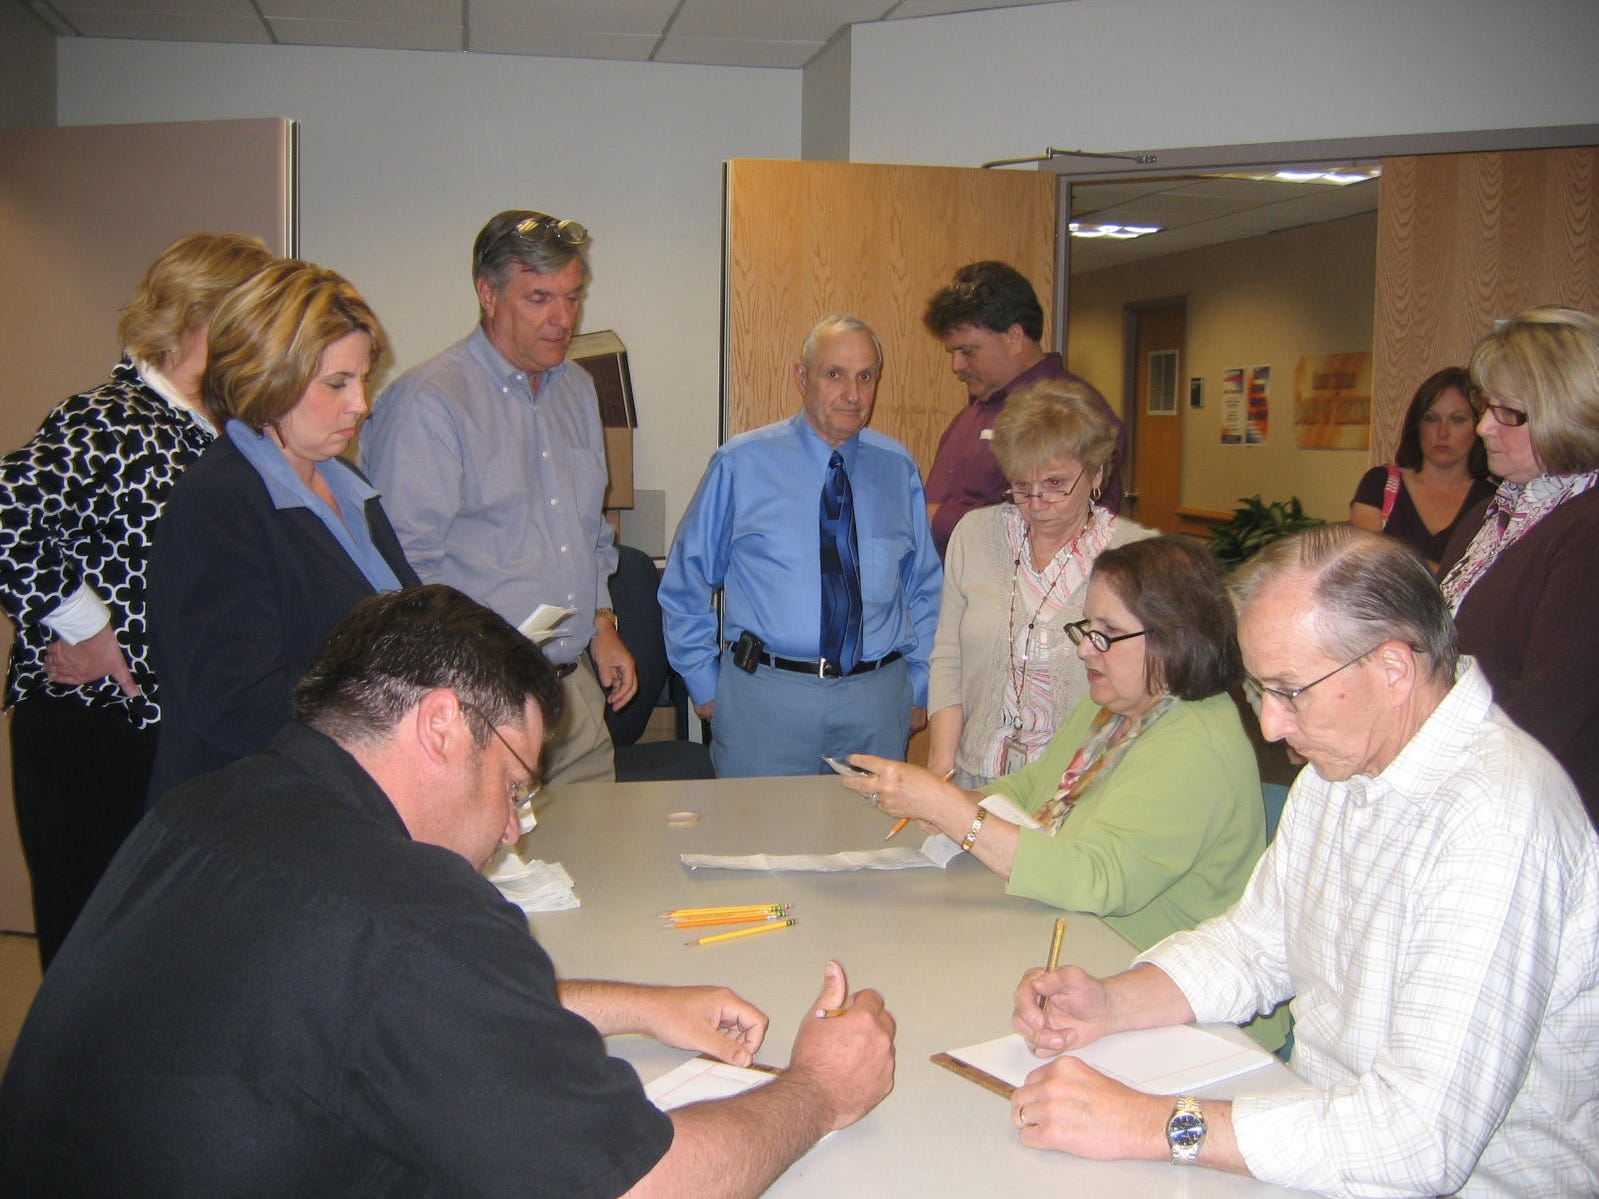 Times-Beacon photo by Paula Scully 5/12/09  George Gilmore, center, standing, and employees of the Ocean County Board of Elections, go over procedure for a vote recount May 12 in recount of write-in votes for the two top vote getters for a vacant three-year seat in the Little Egg Harbor School District elections held April 21.